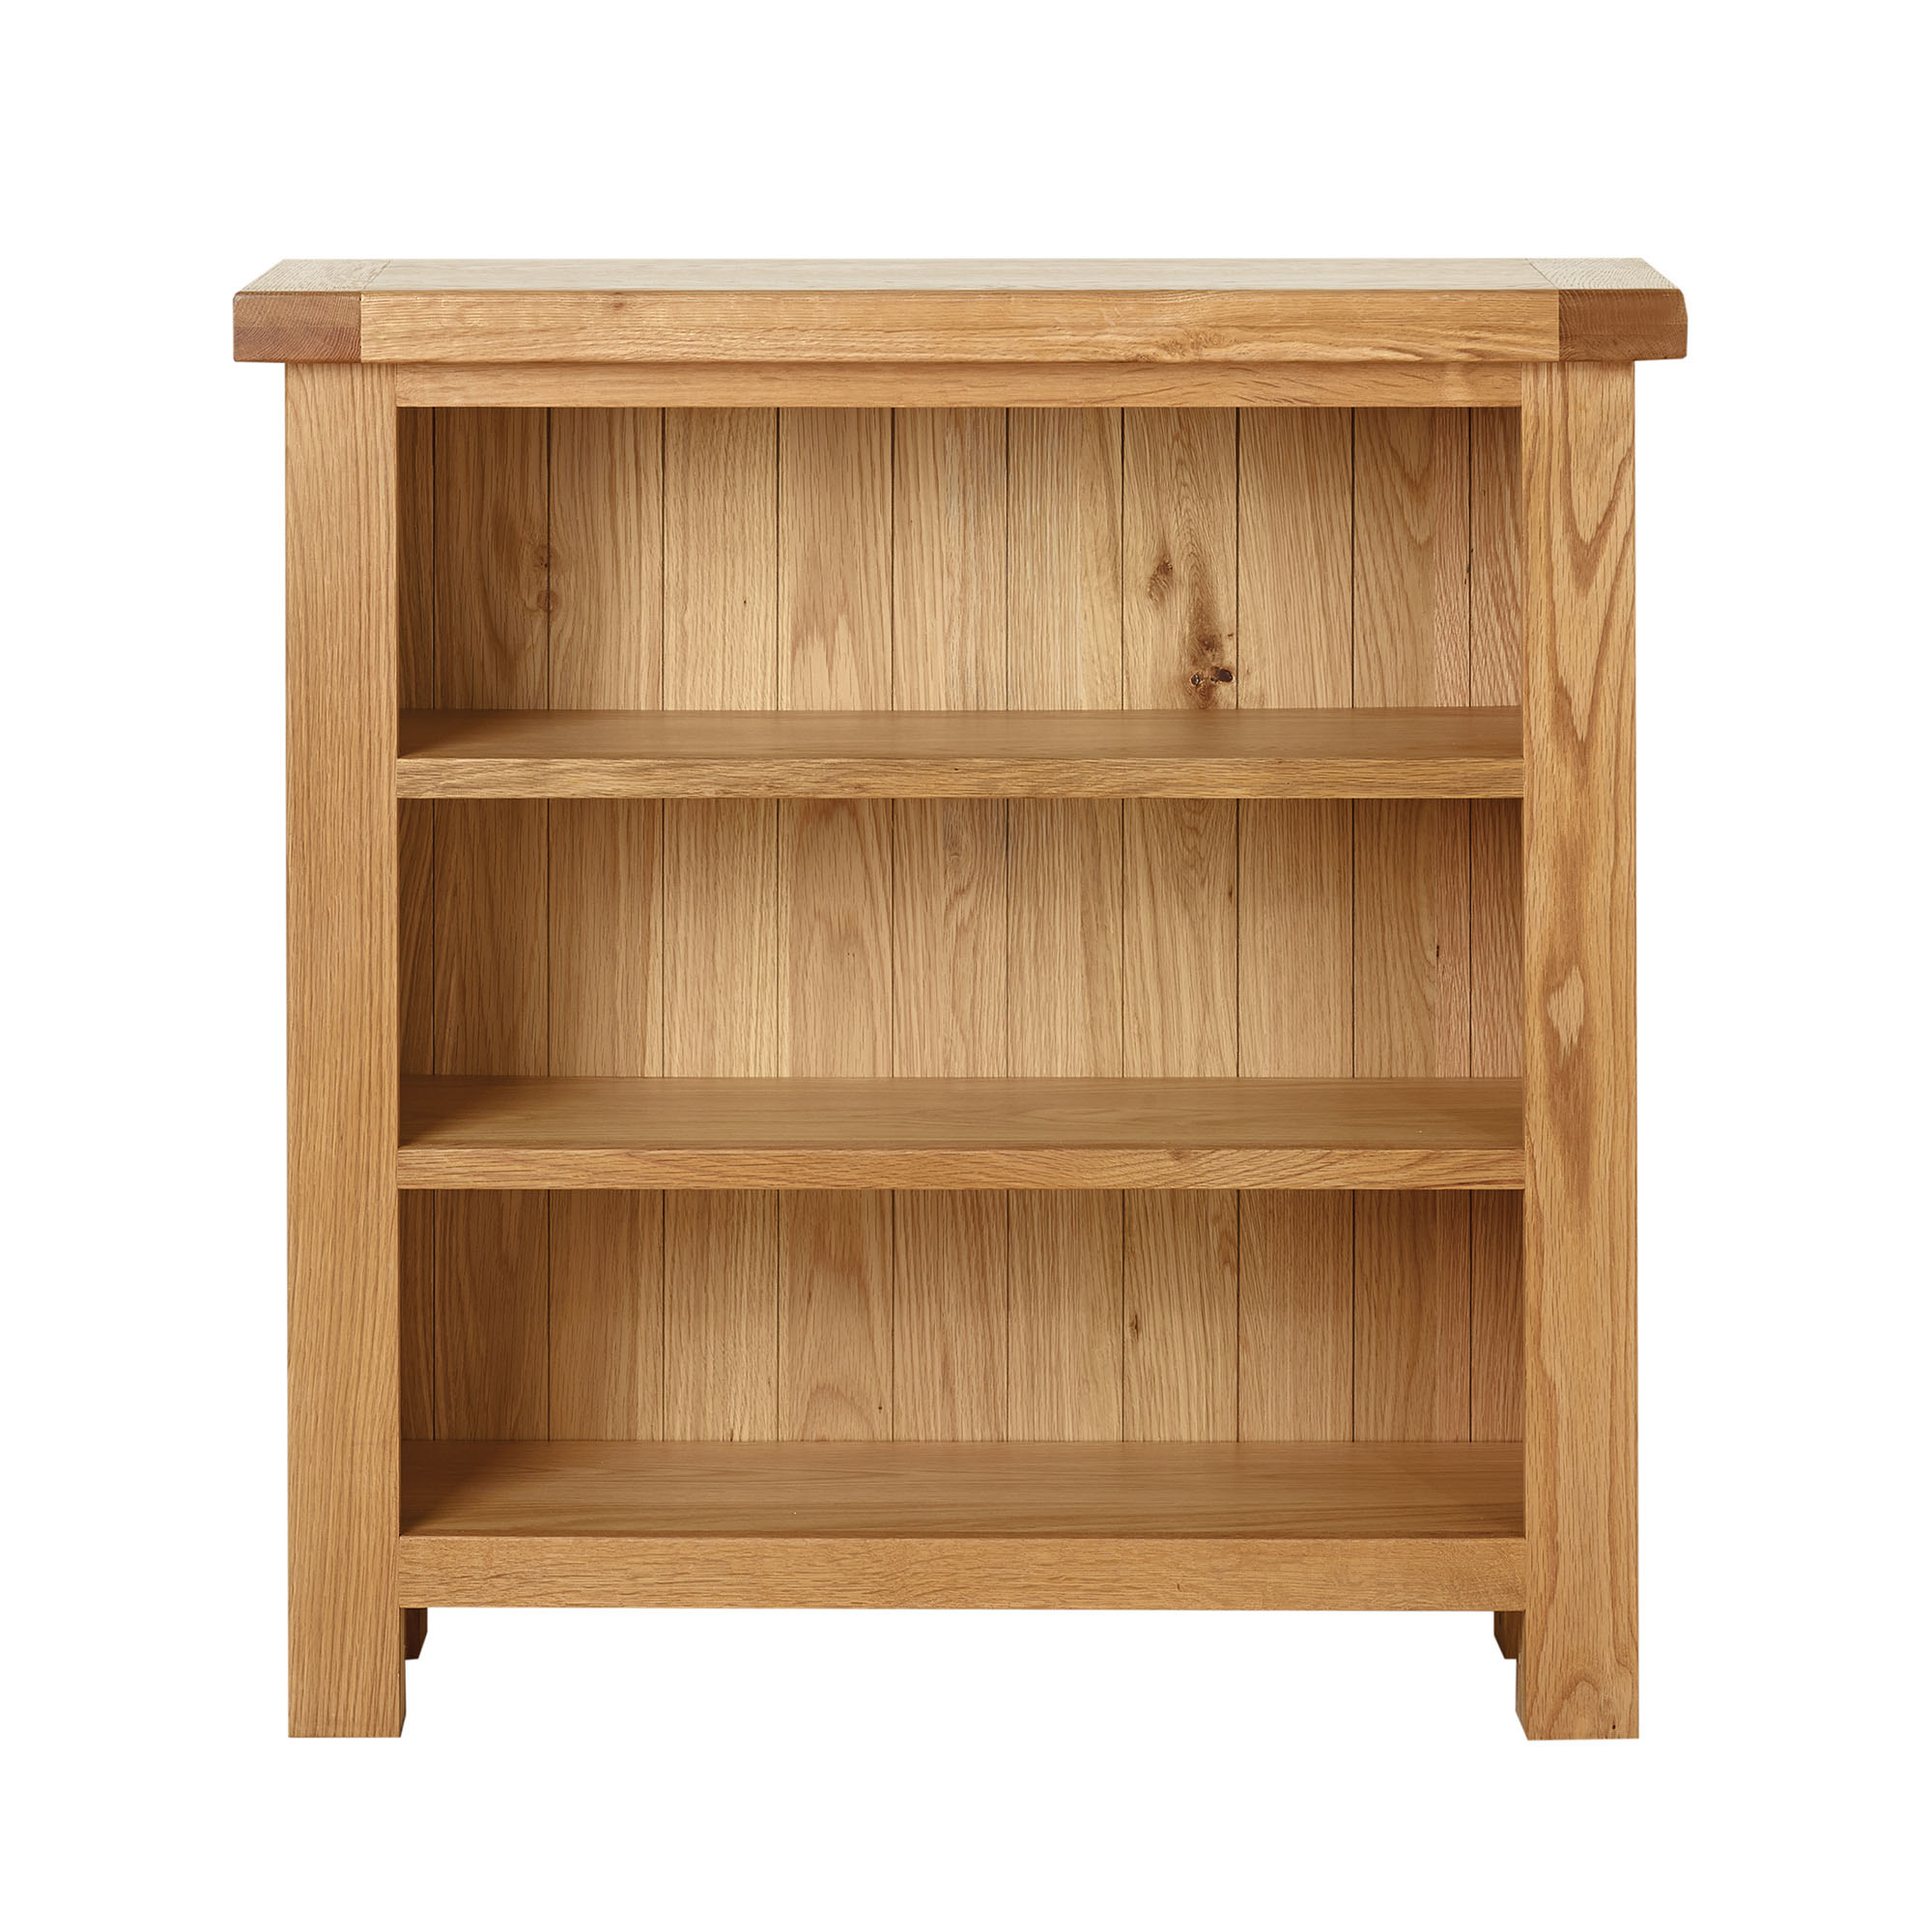 Harrogate Oak Low Bookcase